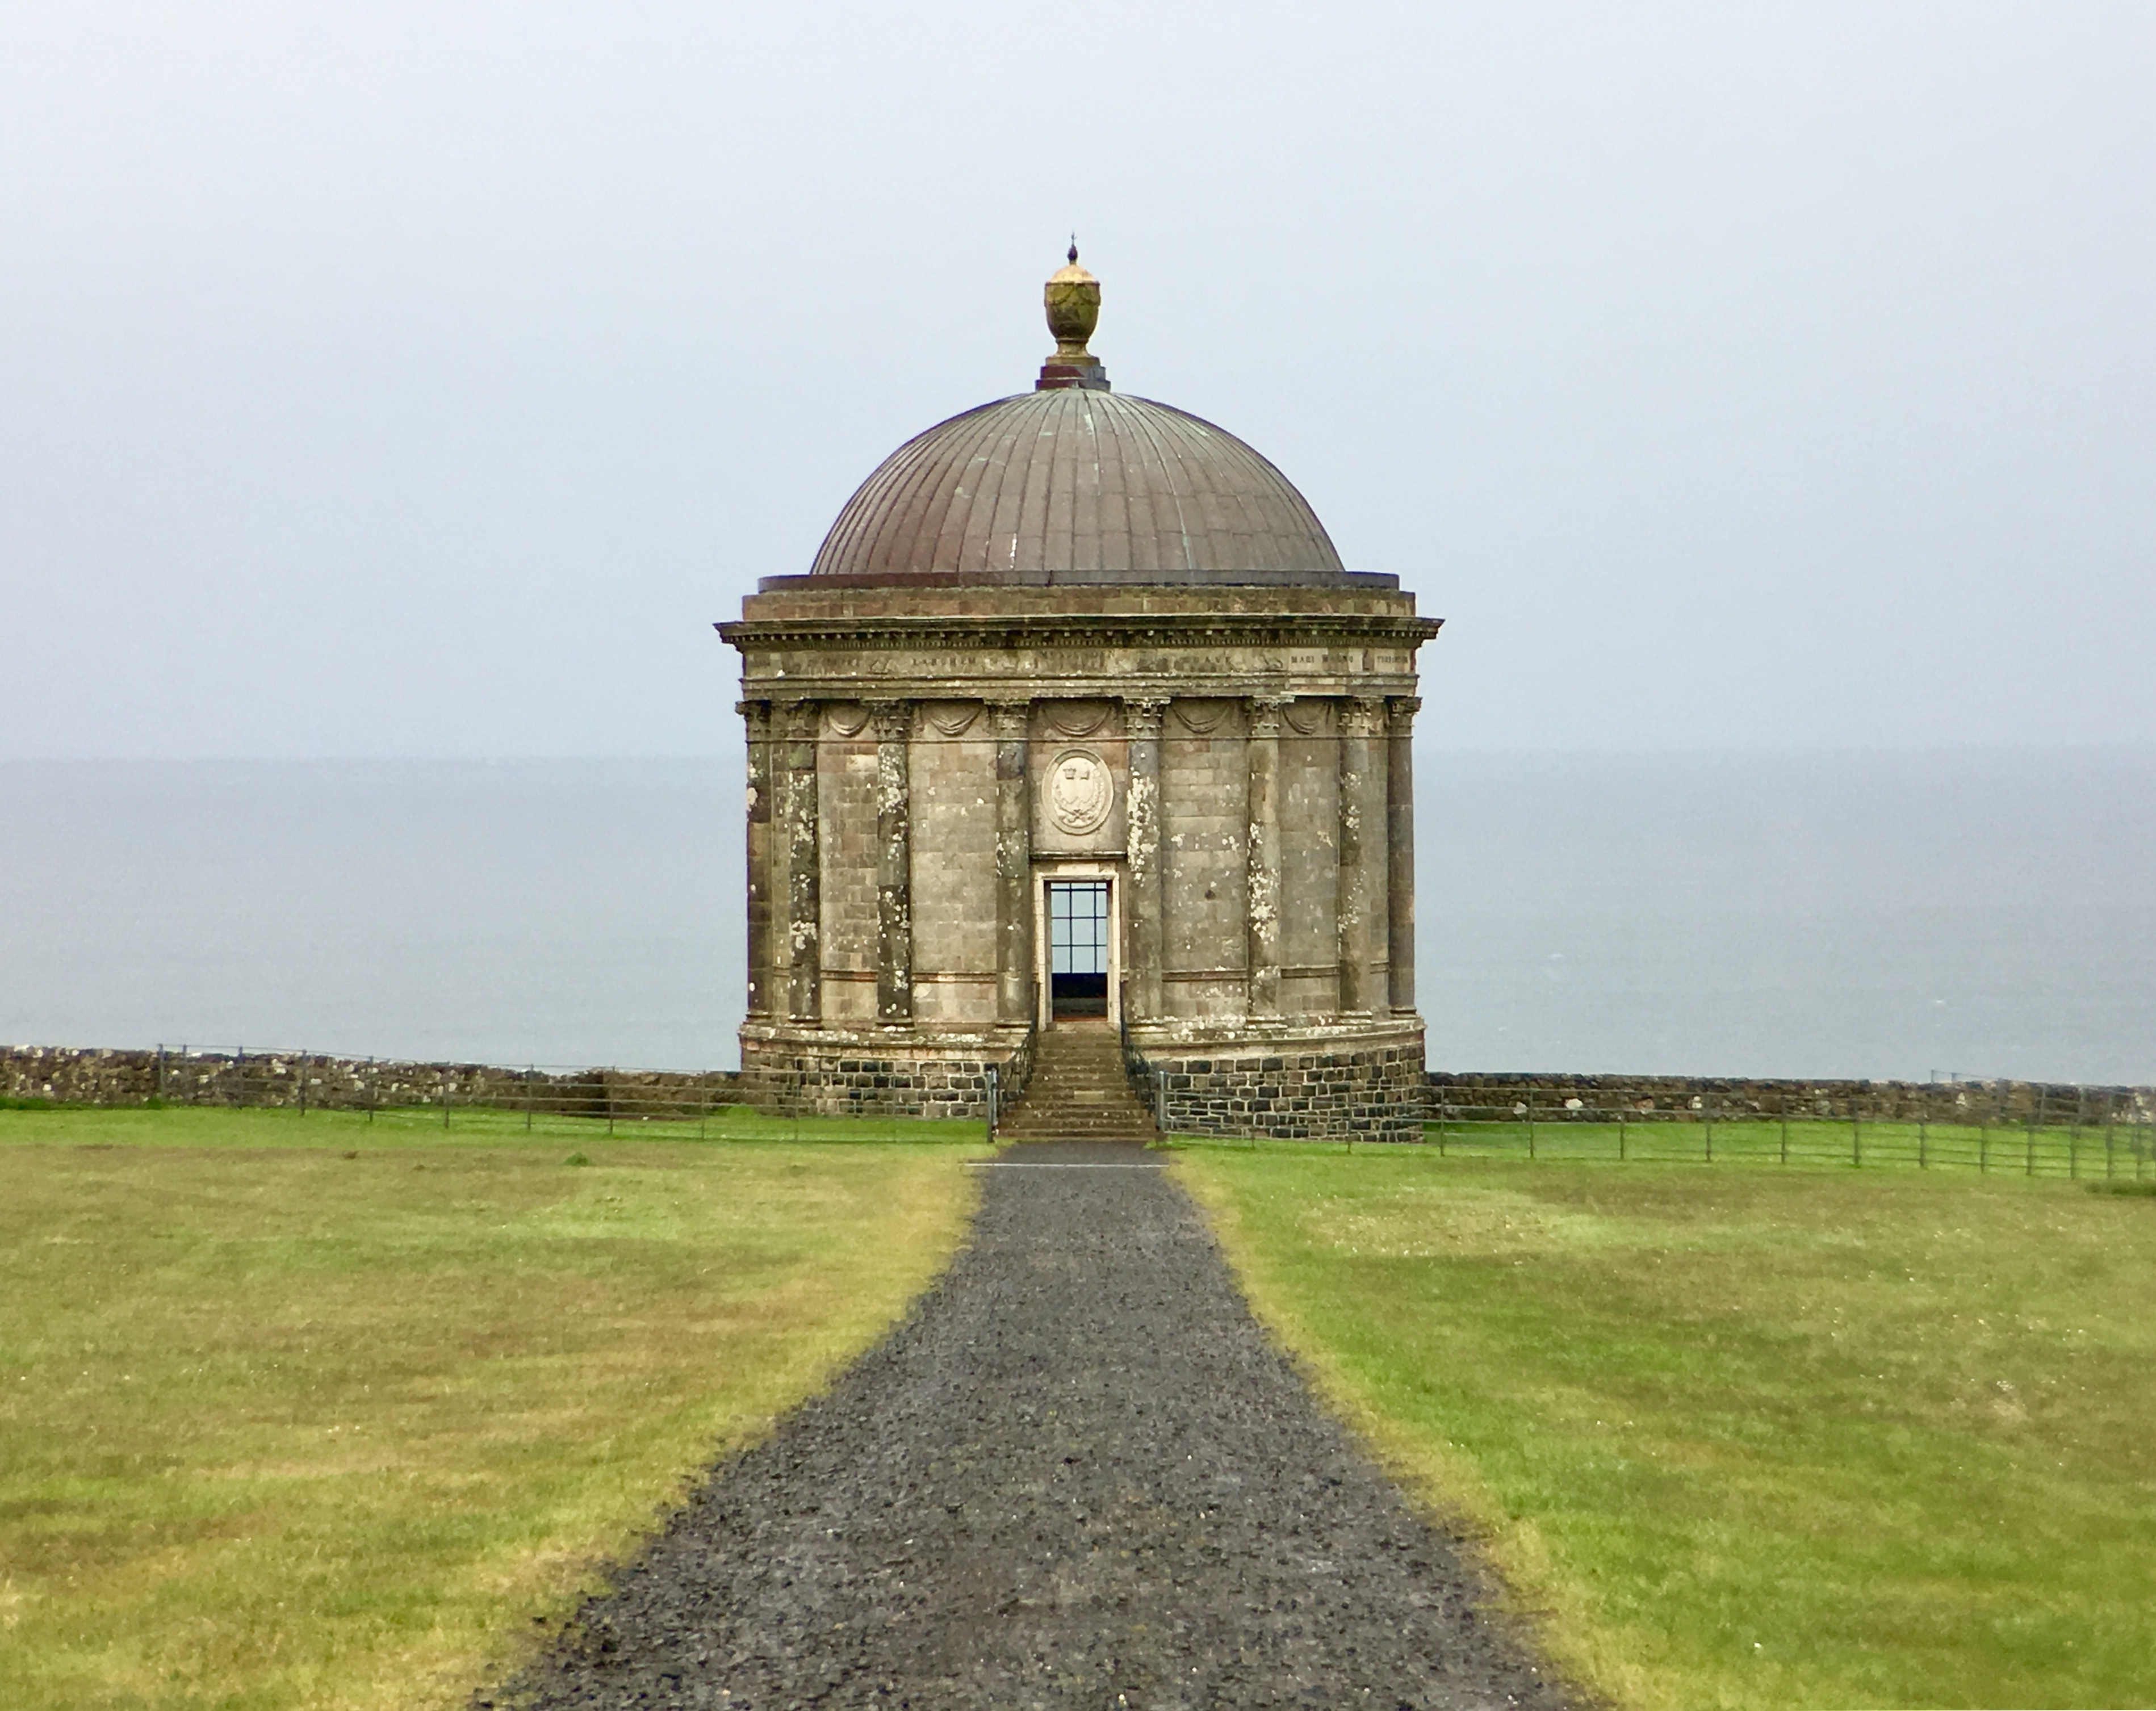 The Mussenden Temple stands on the edge of its cliff, appearing to be moments away from tumbling into the sea.